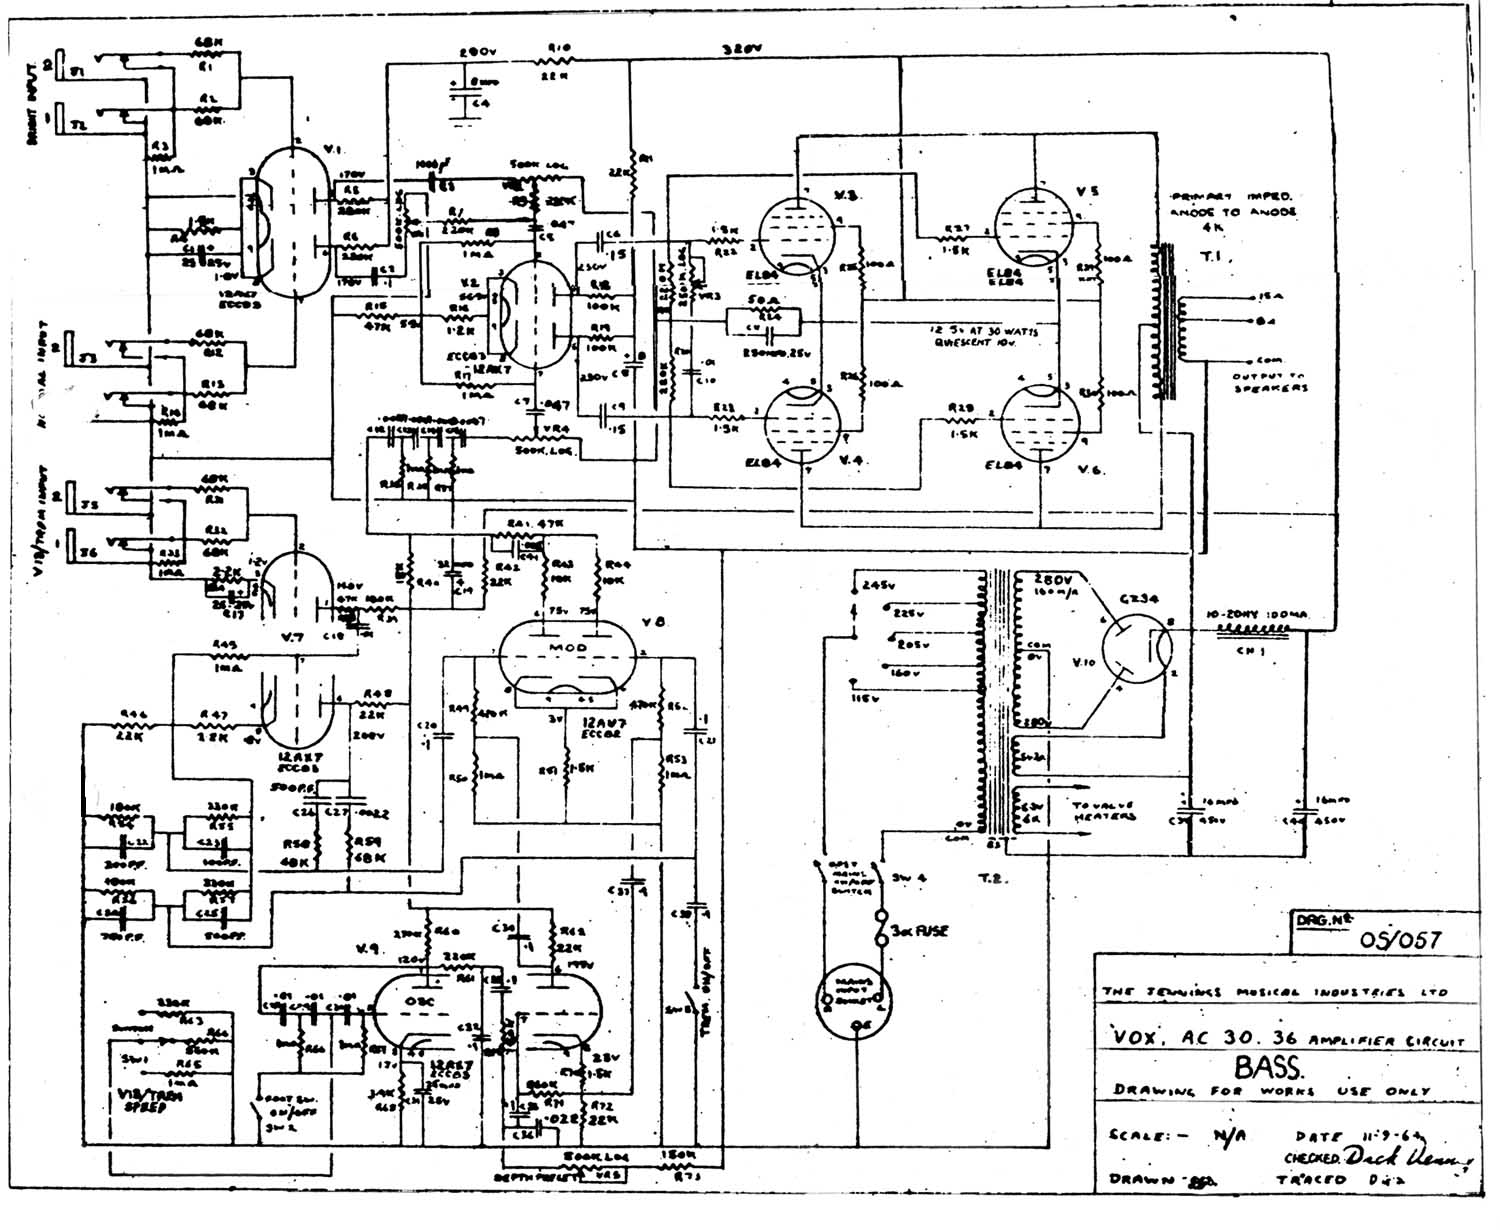 Wiring Diagram For Peavey Classic Solid State Hybrid